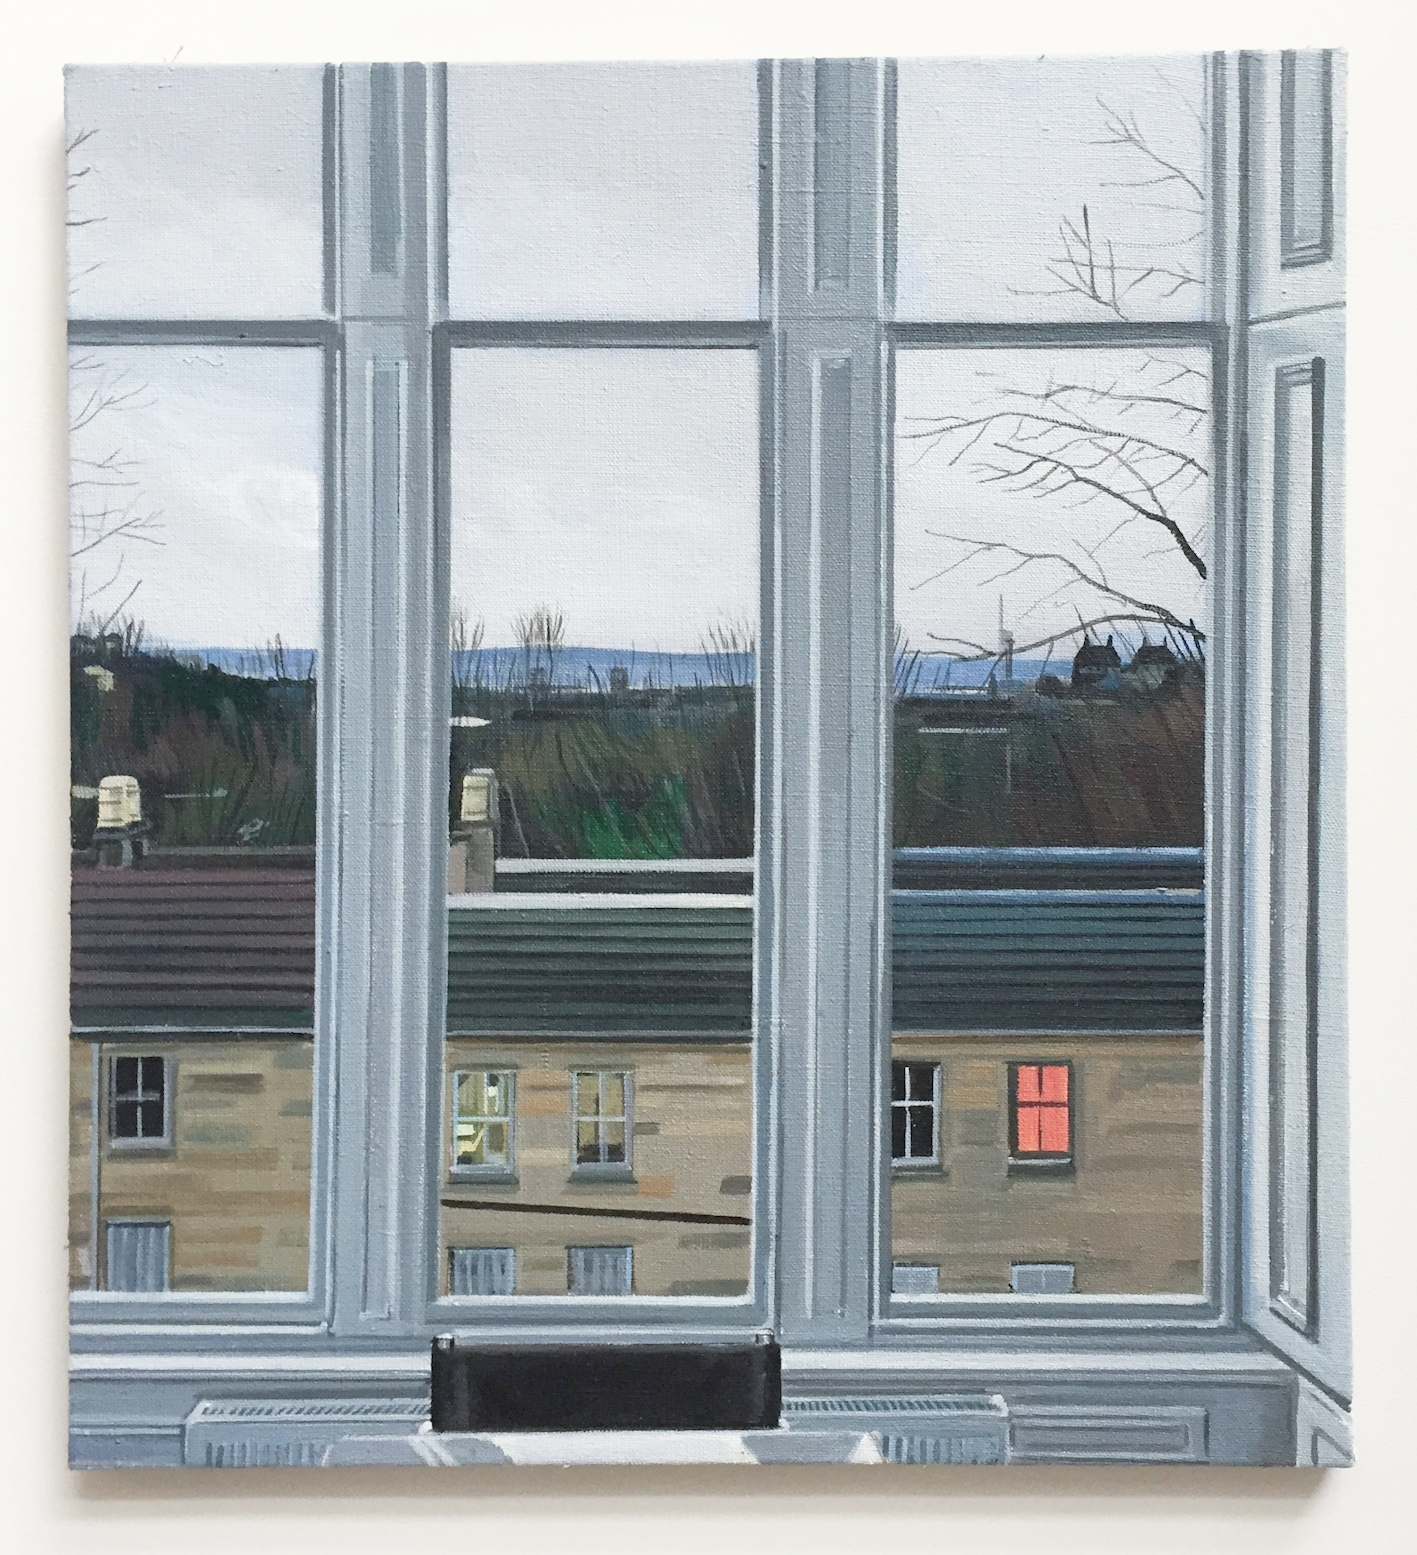 Wilton St. Window 7 , January 2018, 22 x 20 inches, acrylic on linen.